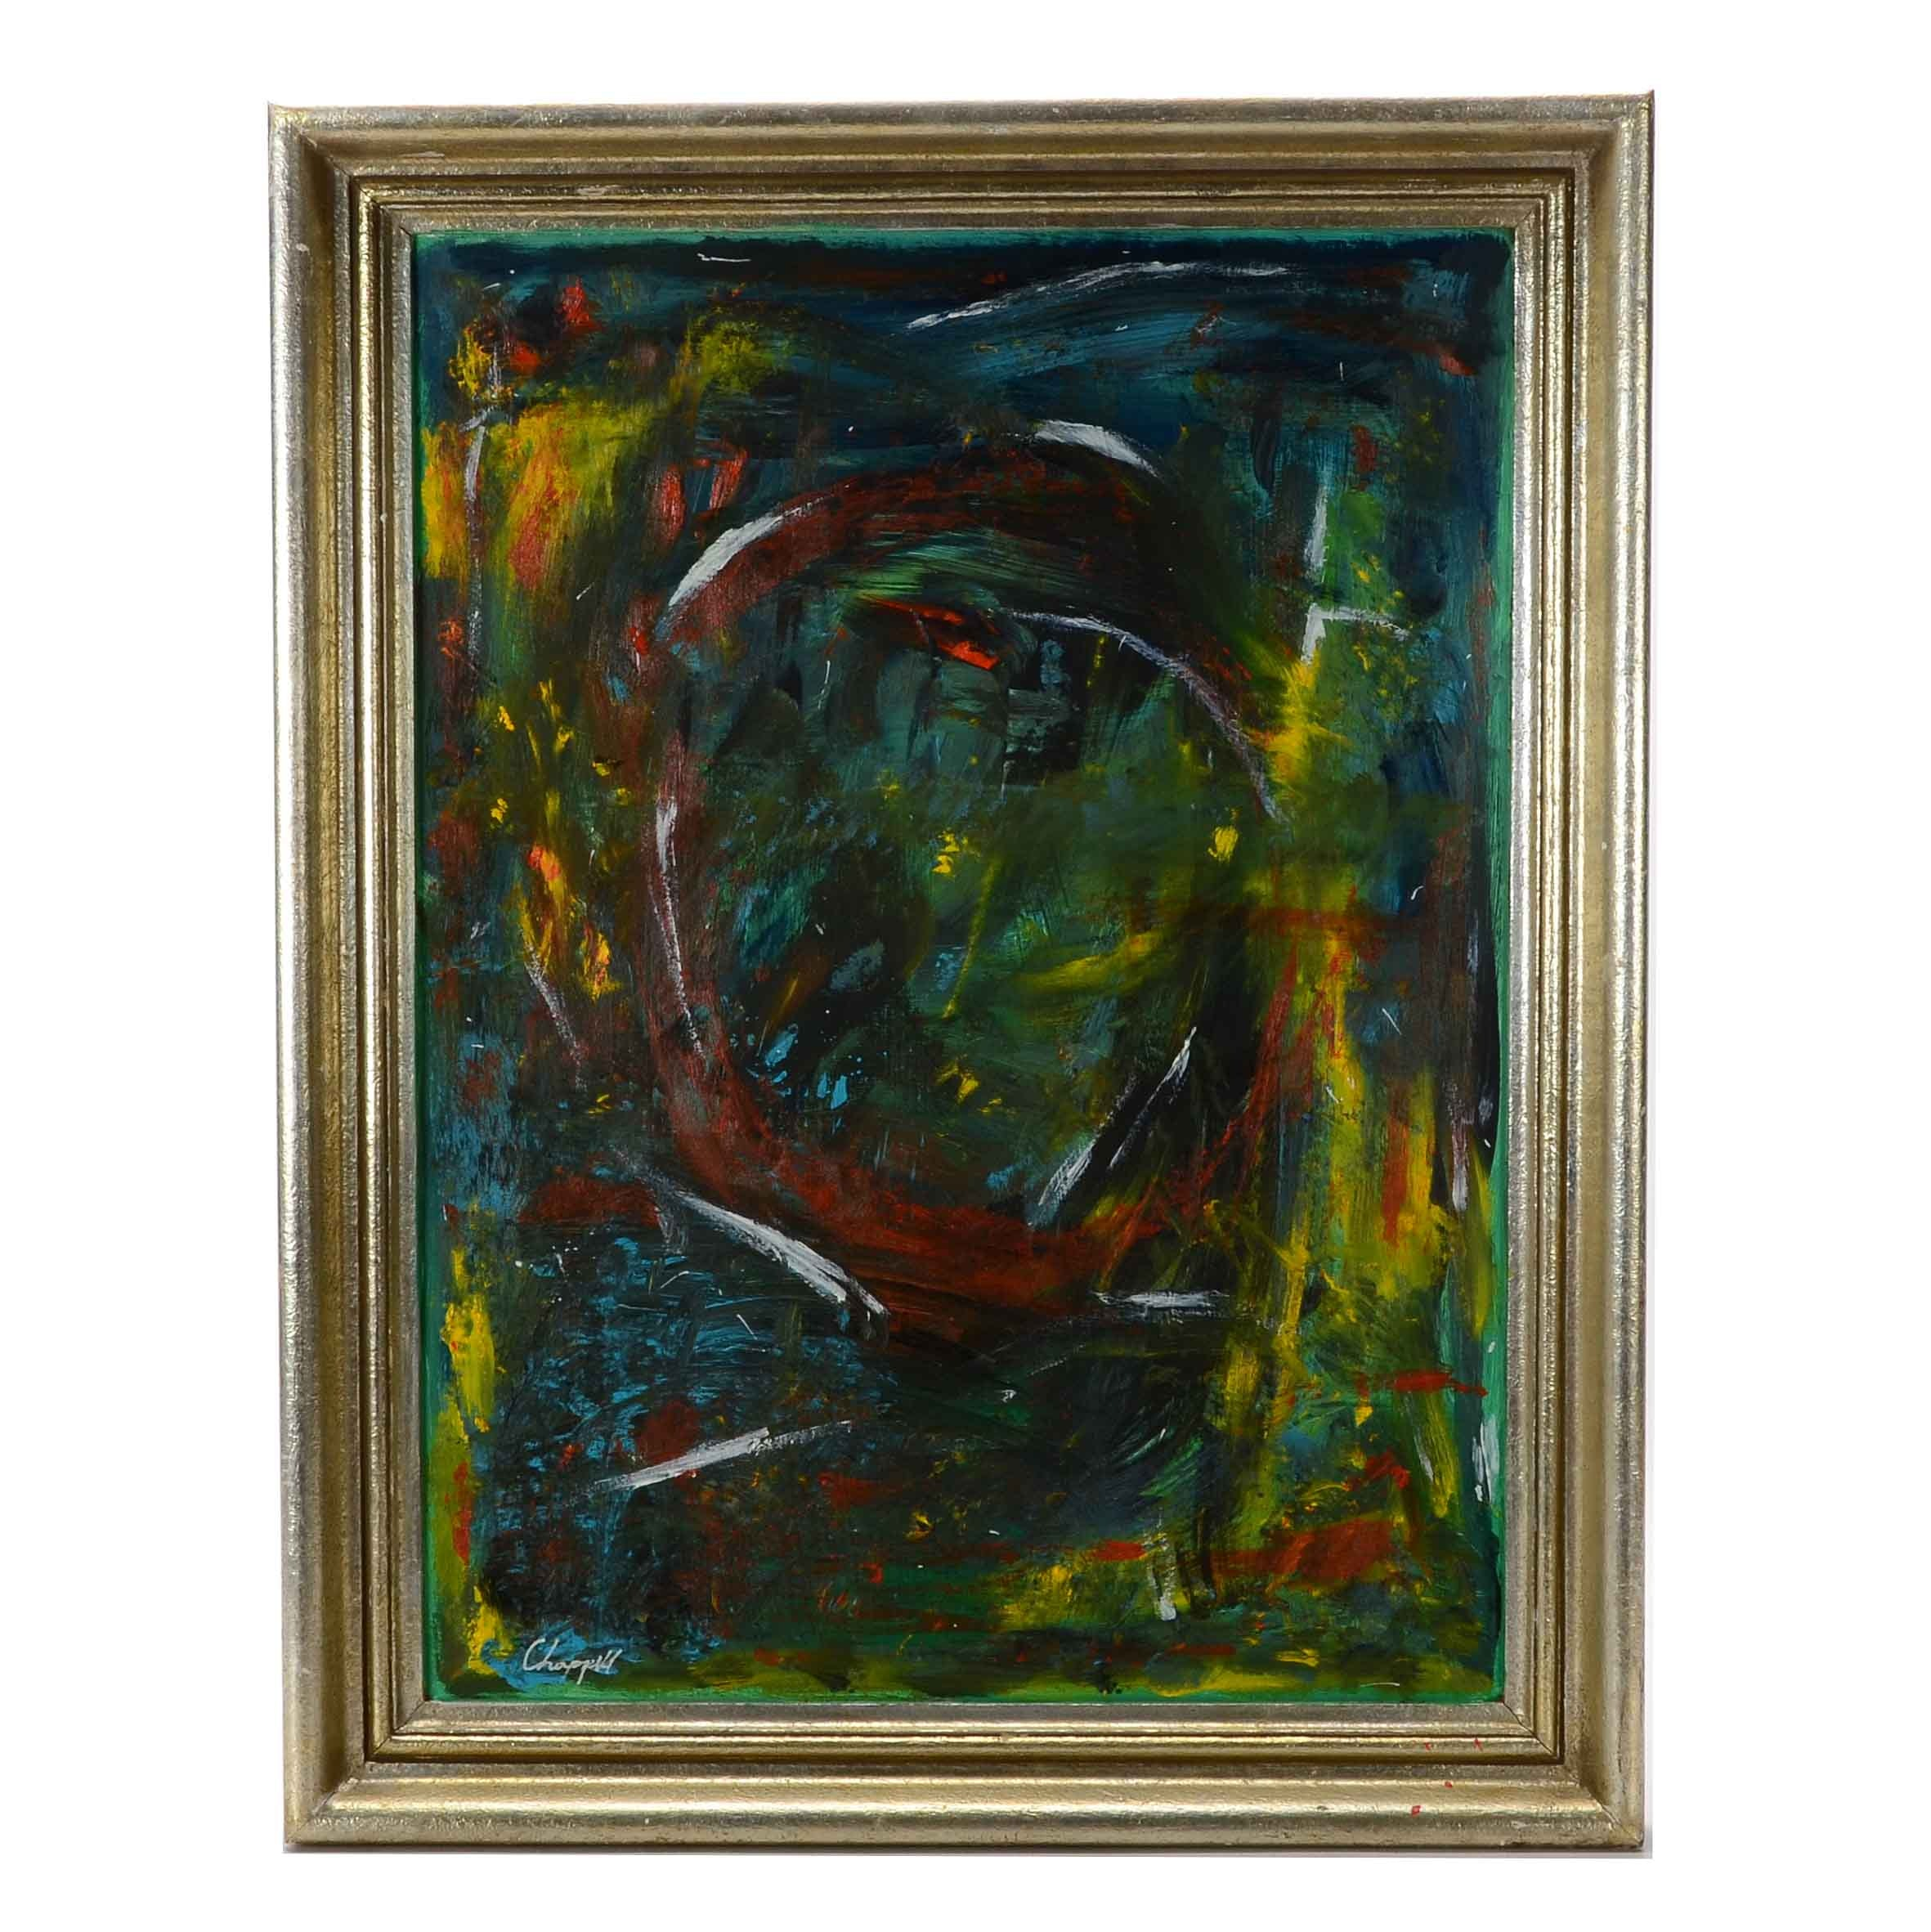 Freddie Chappell Original Contemporary Abstract Acrylic on Board